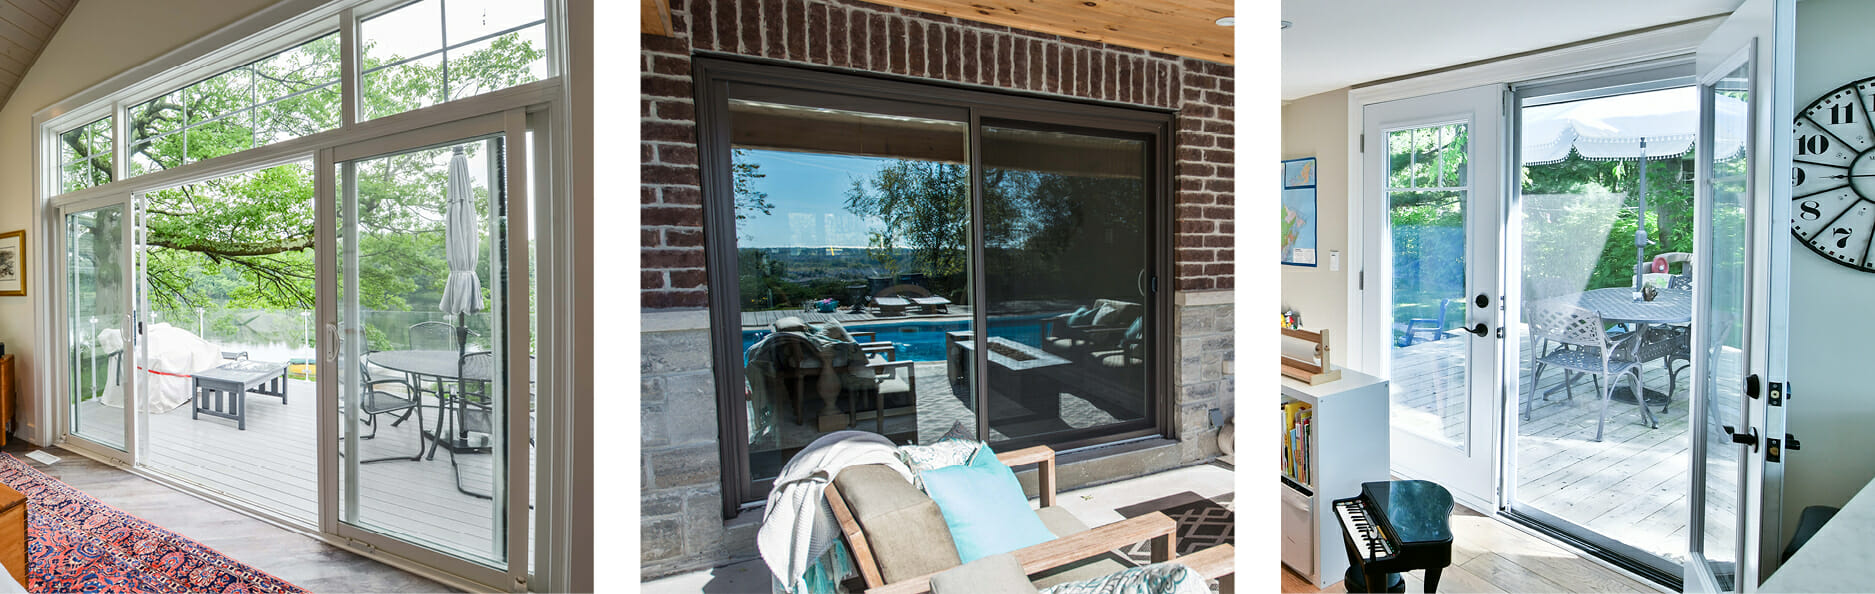 Patio & Sliding Doors - Lifestyle Home Products on